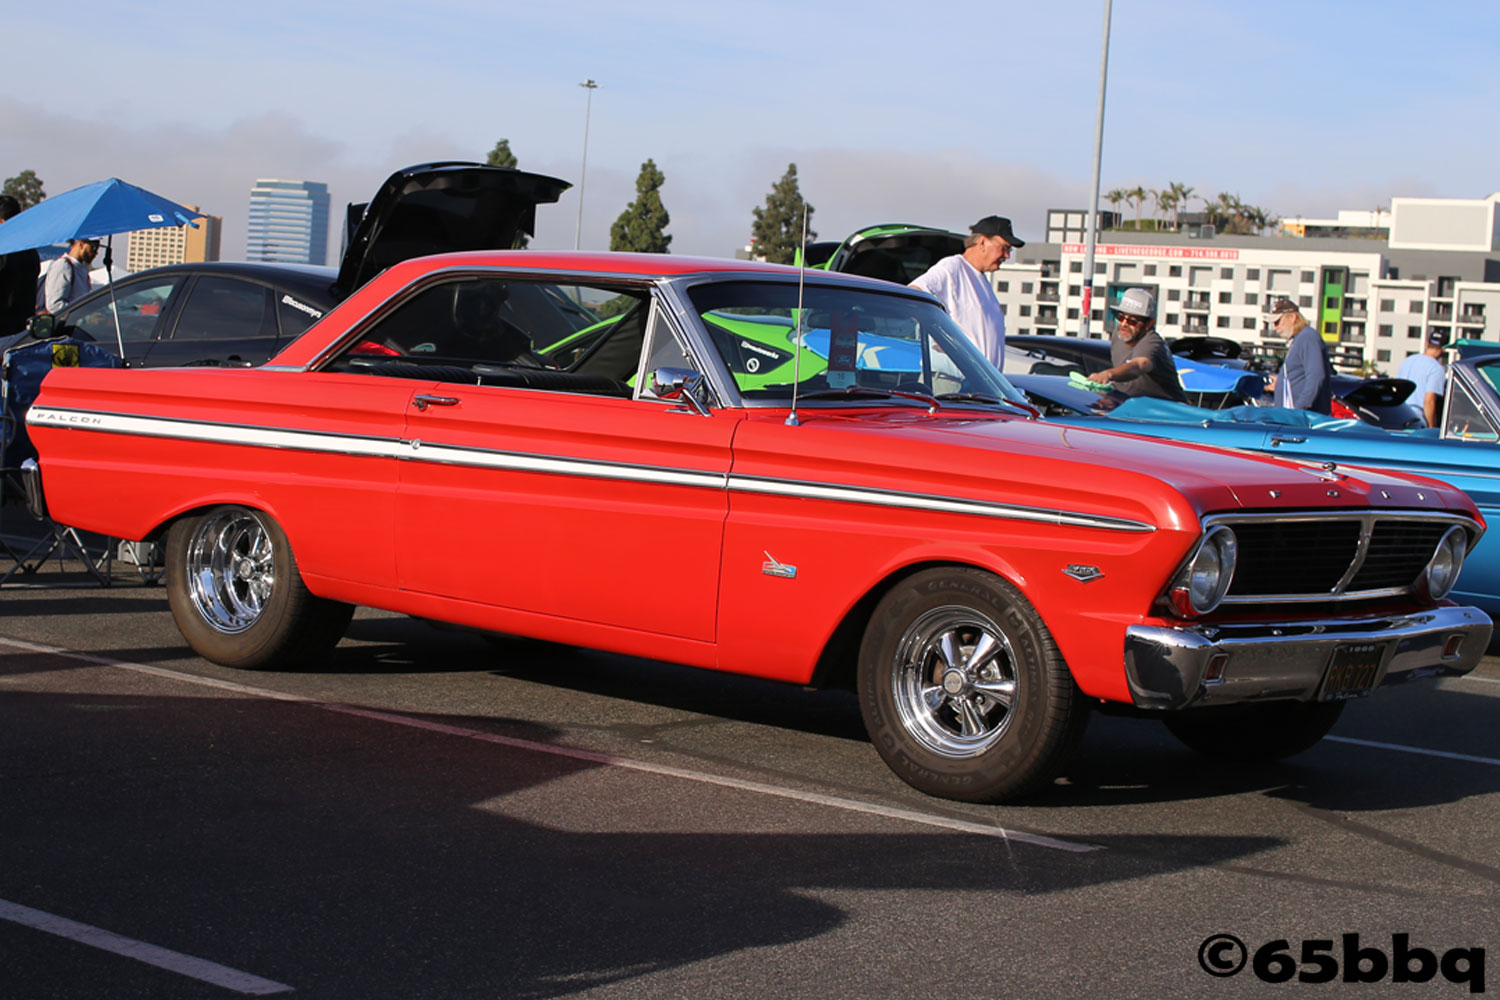 fabulous-fords-forever-april-2019-65bbq-f18.jpg